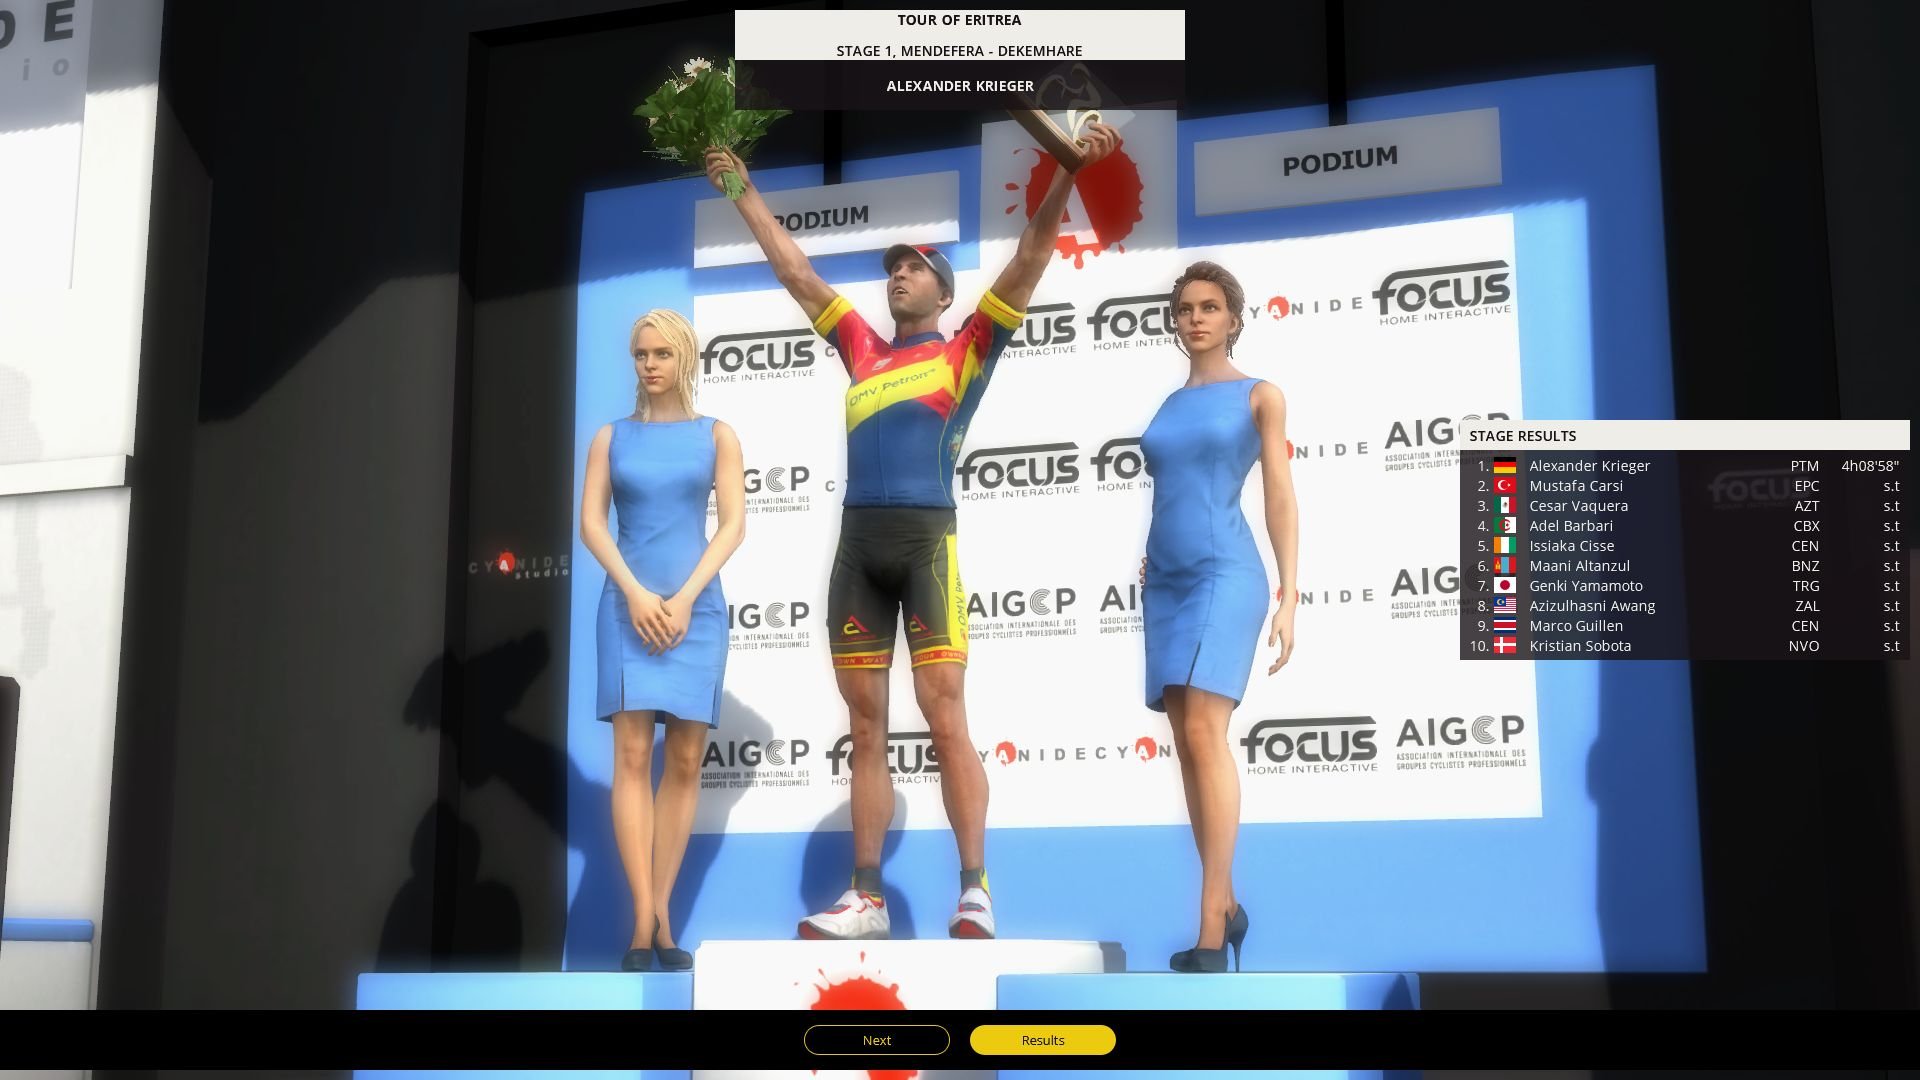 pcmdaily.com/images/mg/2019/Races/C2HC/Eritrea/TOES1%2027.jpg